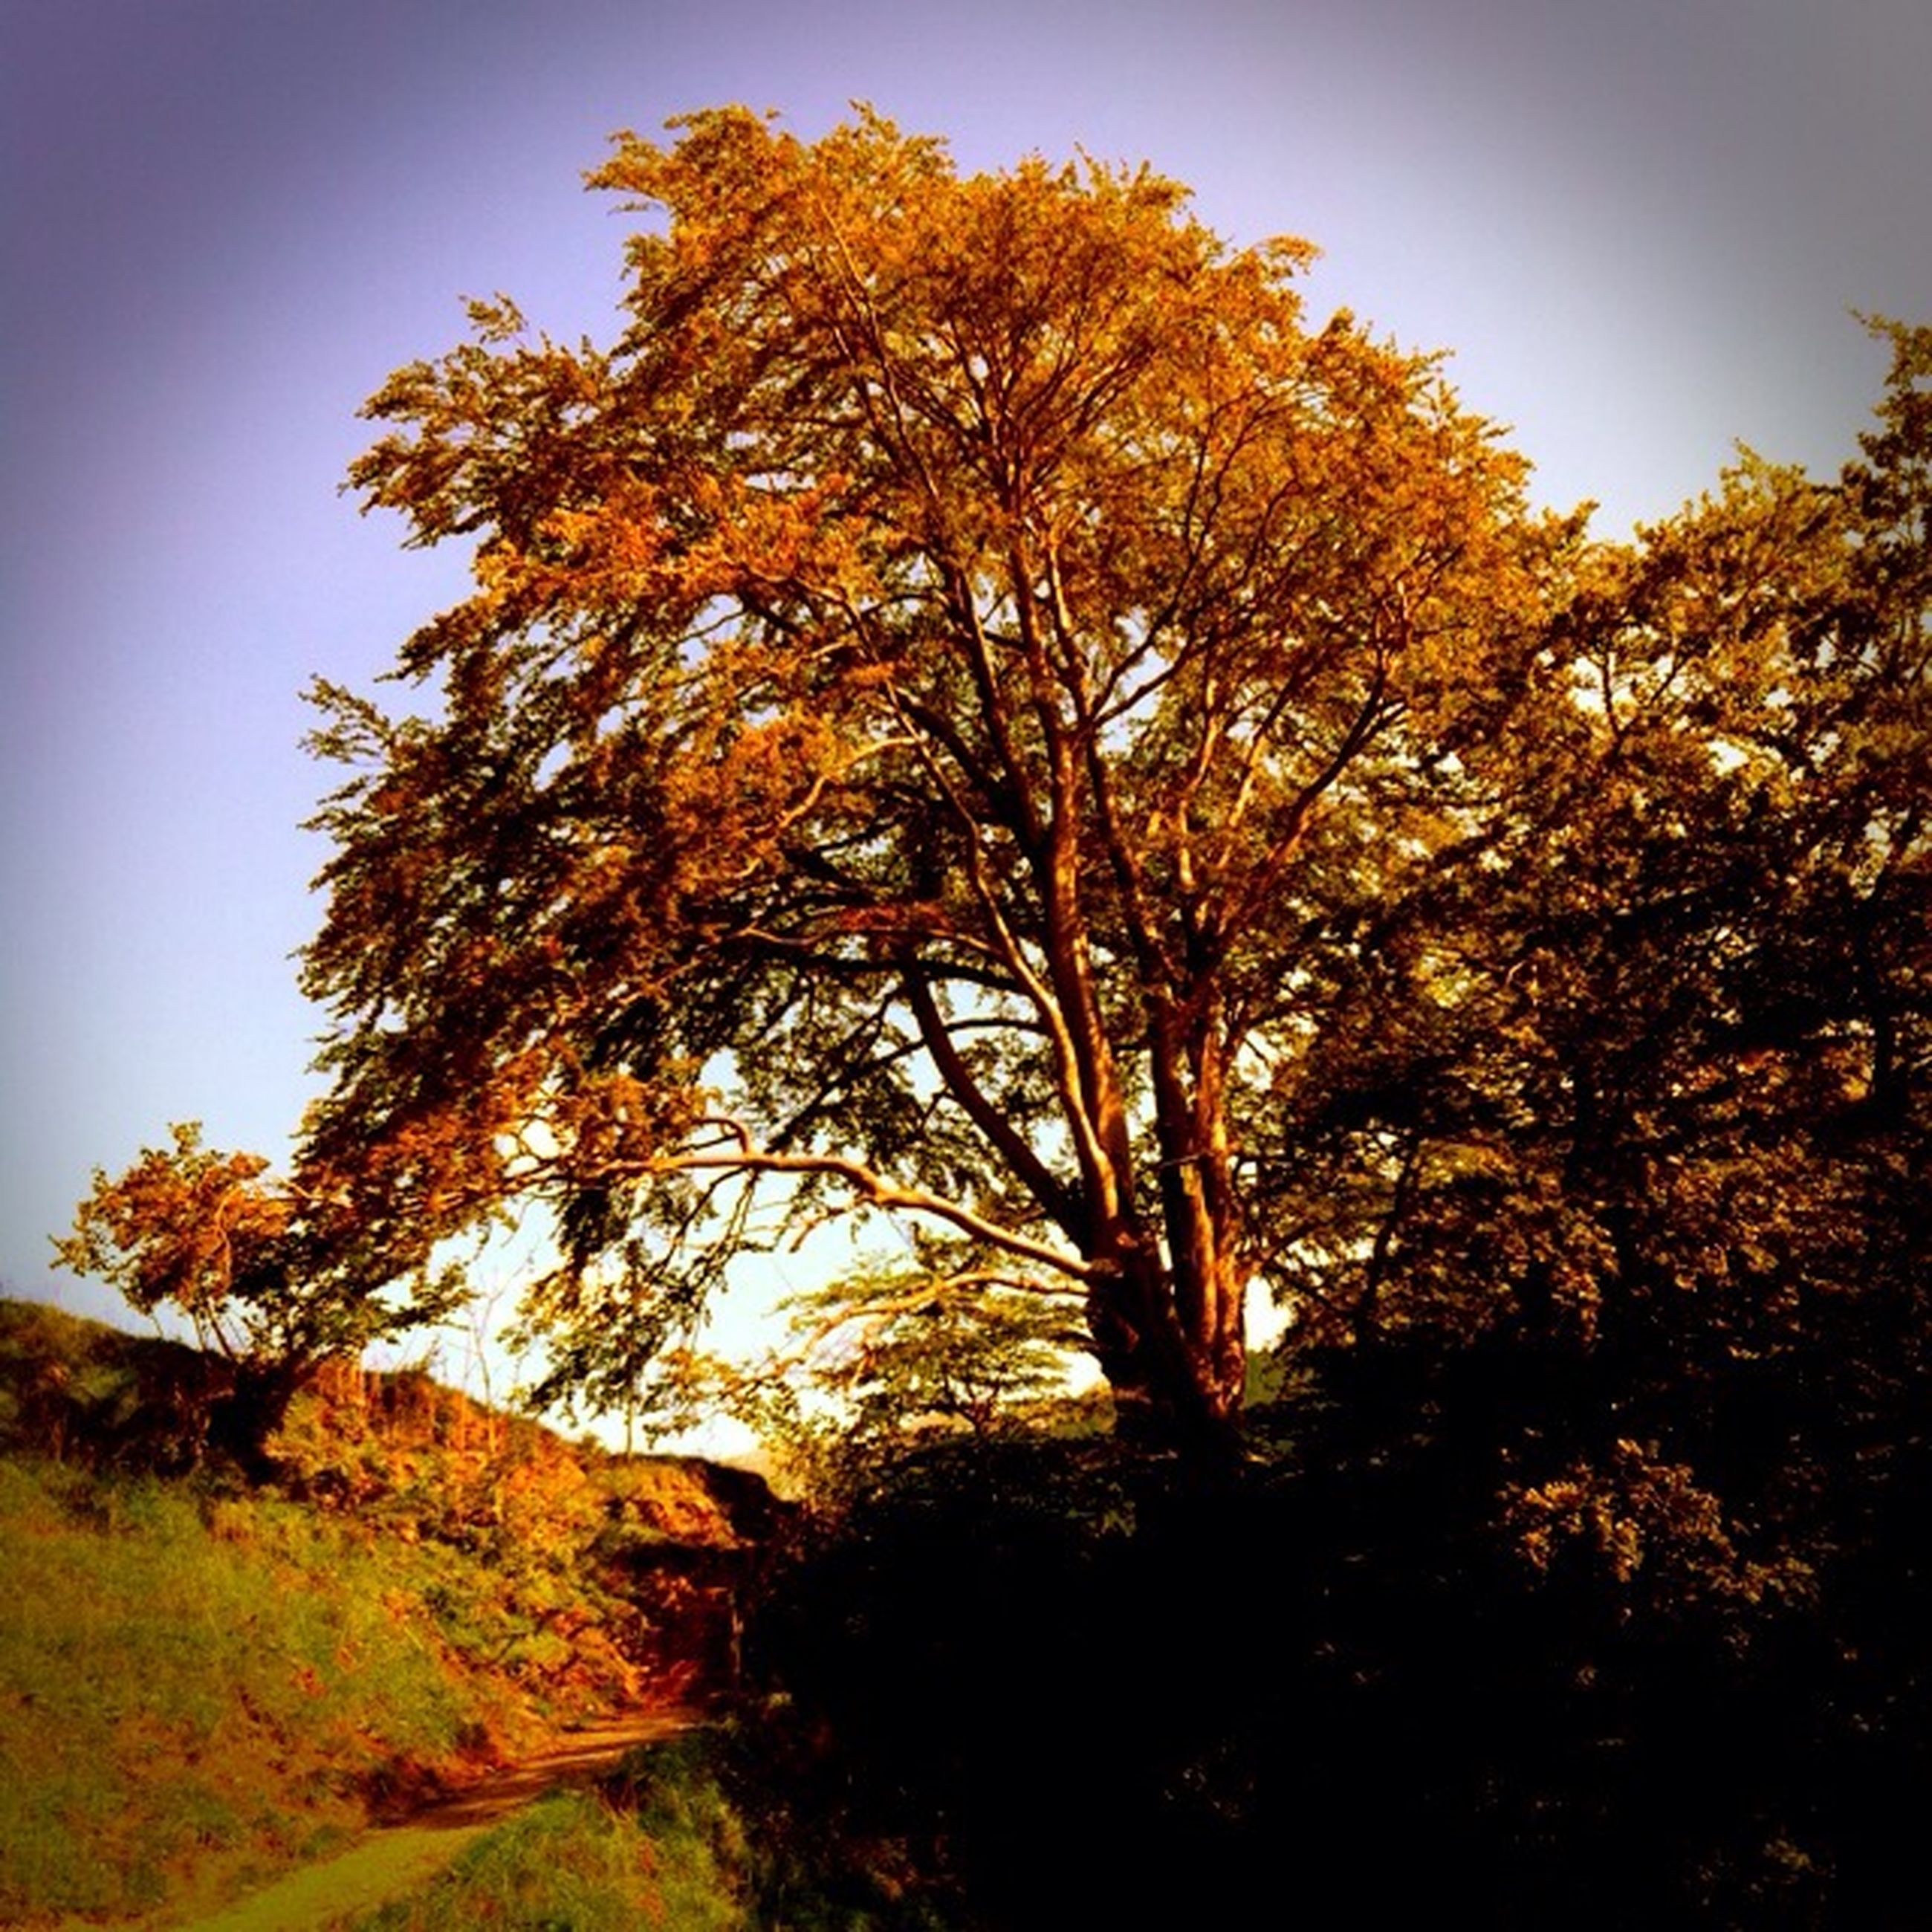 tree, autumn, tranquility, tranquil scene, change, clear sky, beauty in nature, nature, season, scenics, landscape, growth, orange color, field, non-urban scene, yellow, sunlight, branch, sky, outdoors